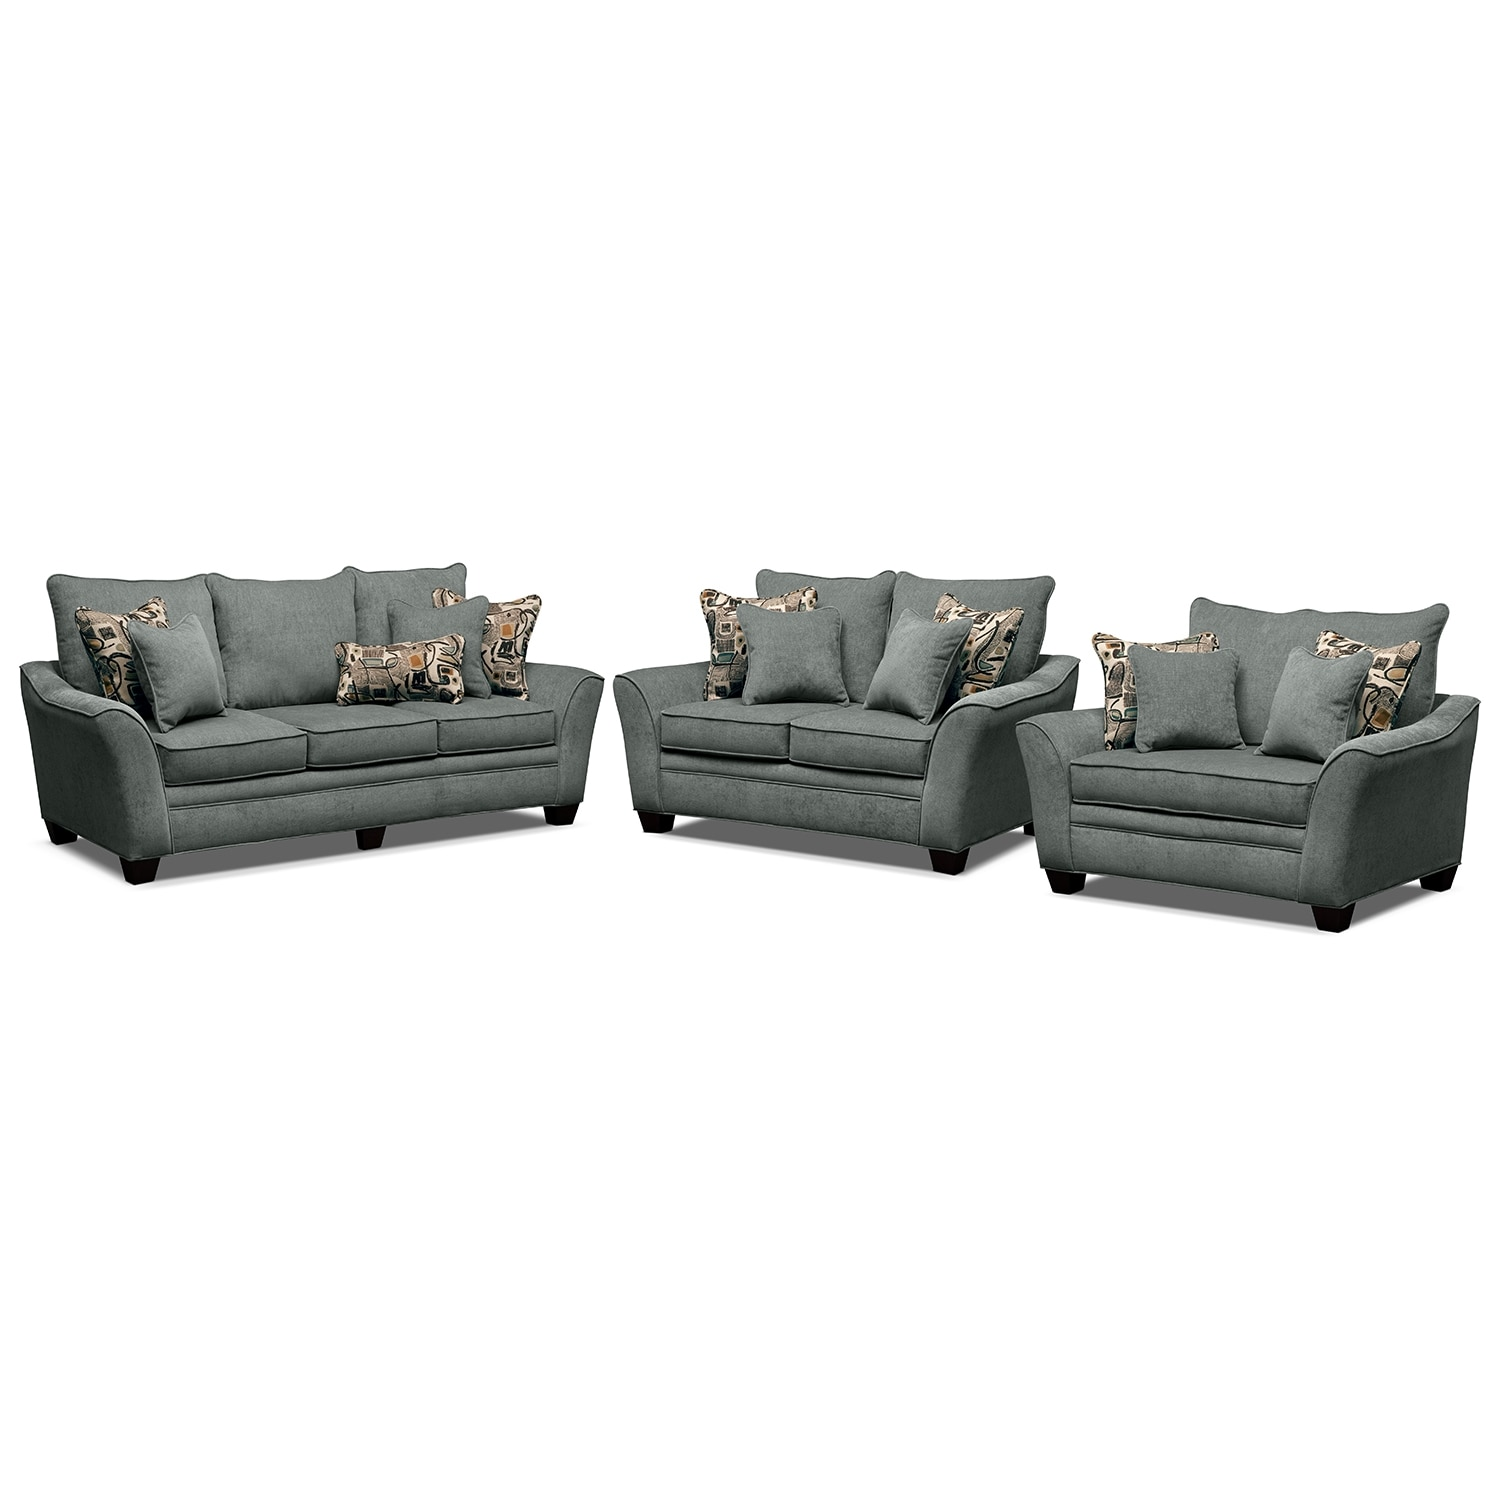 Living Room Furniture - Mandalay II 3 Pc. Living Room